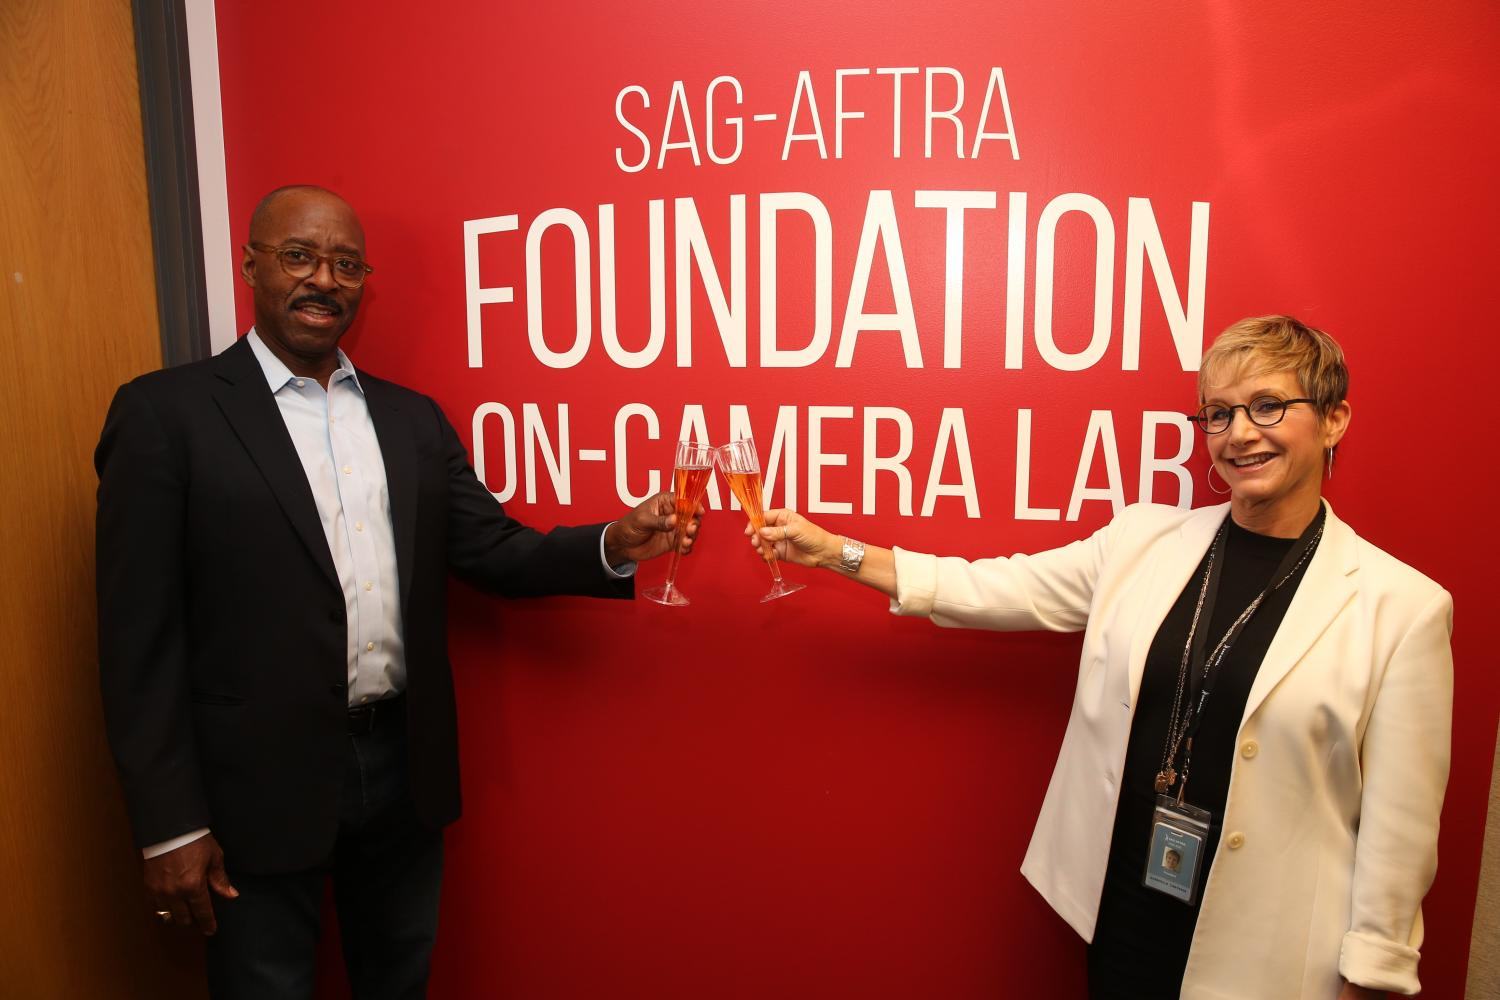 """Vance in a black suit with a light blue button up holding a champagne flute cheersing Carteris in a white blazer and black top standing in front of a red wall with the """"SAG-AFTRA Foundation"""" logo in white and """"On-Camera Lab"""" in white below the logo."""